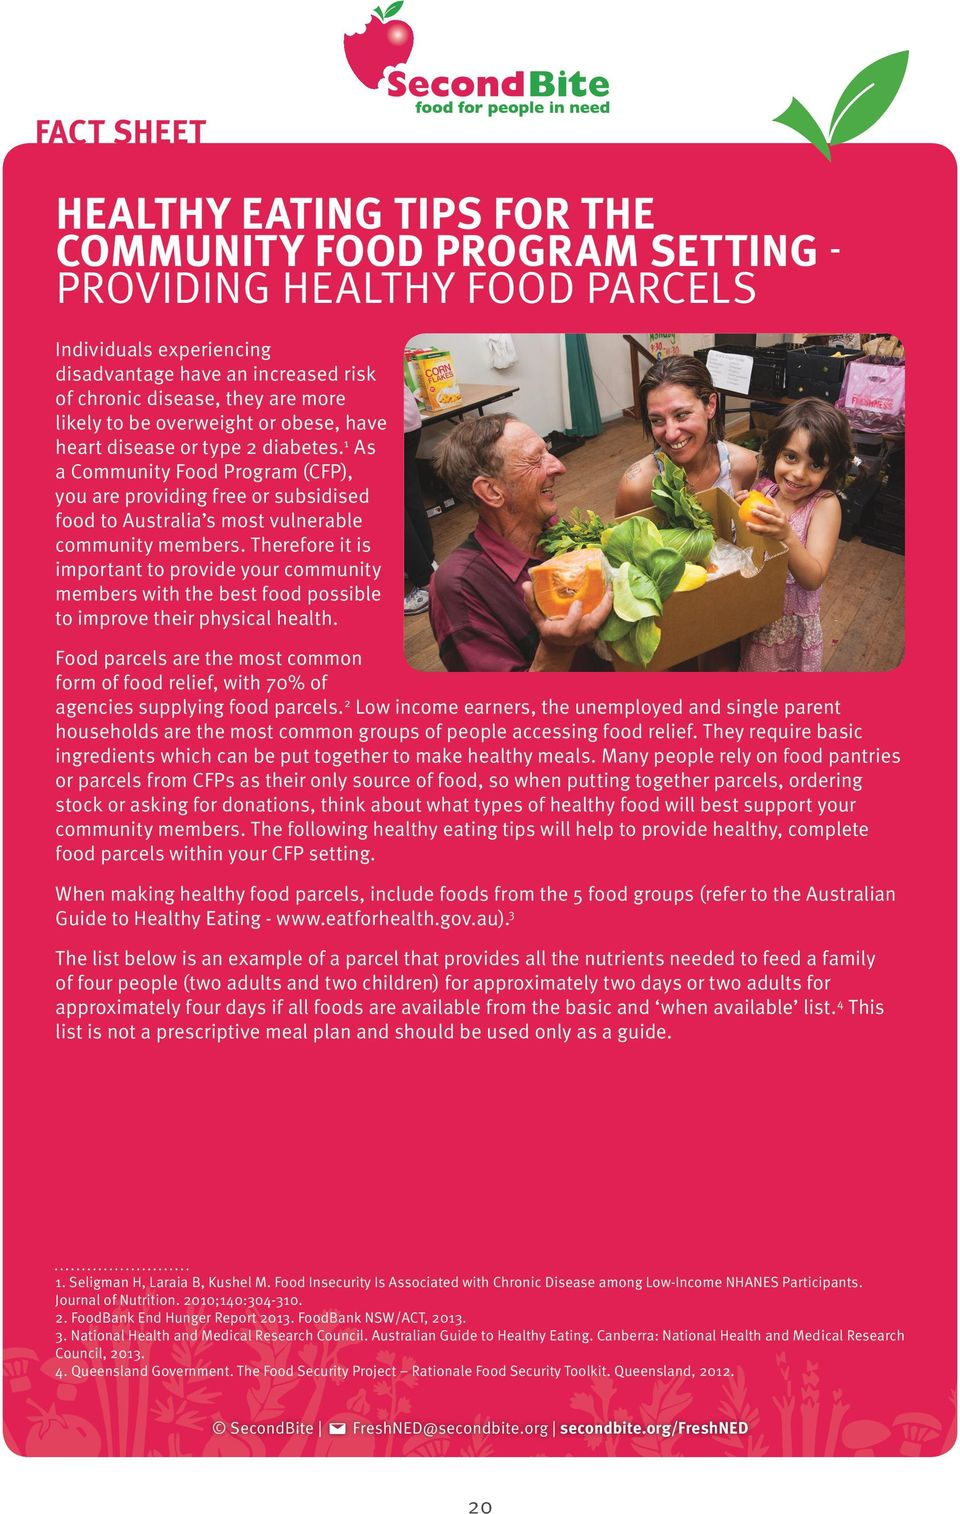 Therefore it is important to provide your community members with the best food possible to improve their physical health.